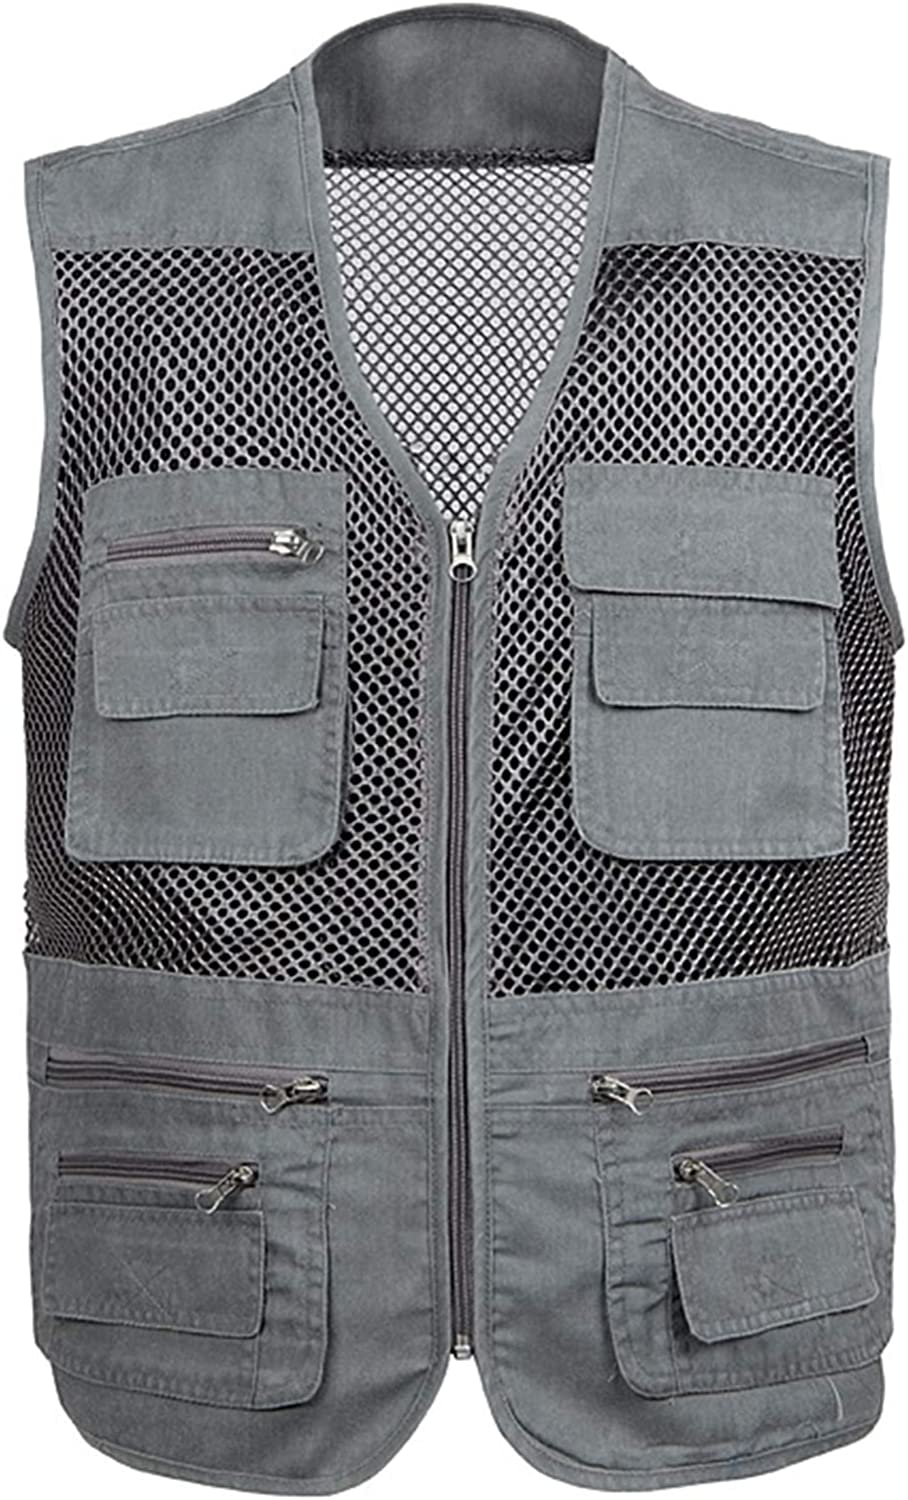 CNBPLS Large Size Mesh Quick-Drying Vests,Male with Multi-Pocket Waistcoat,Mens Breathable Fishing Vest Work Sleeveless Jacket,Gray,2XL